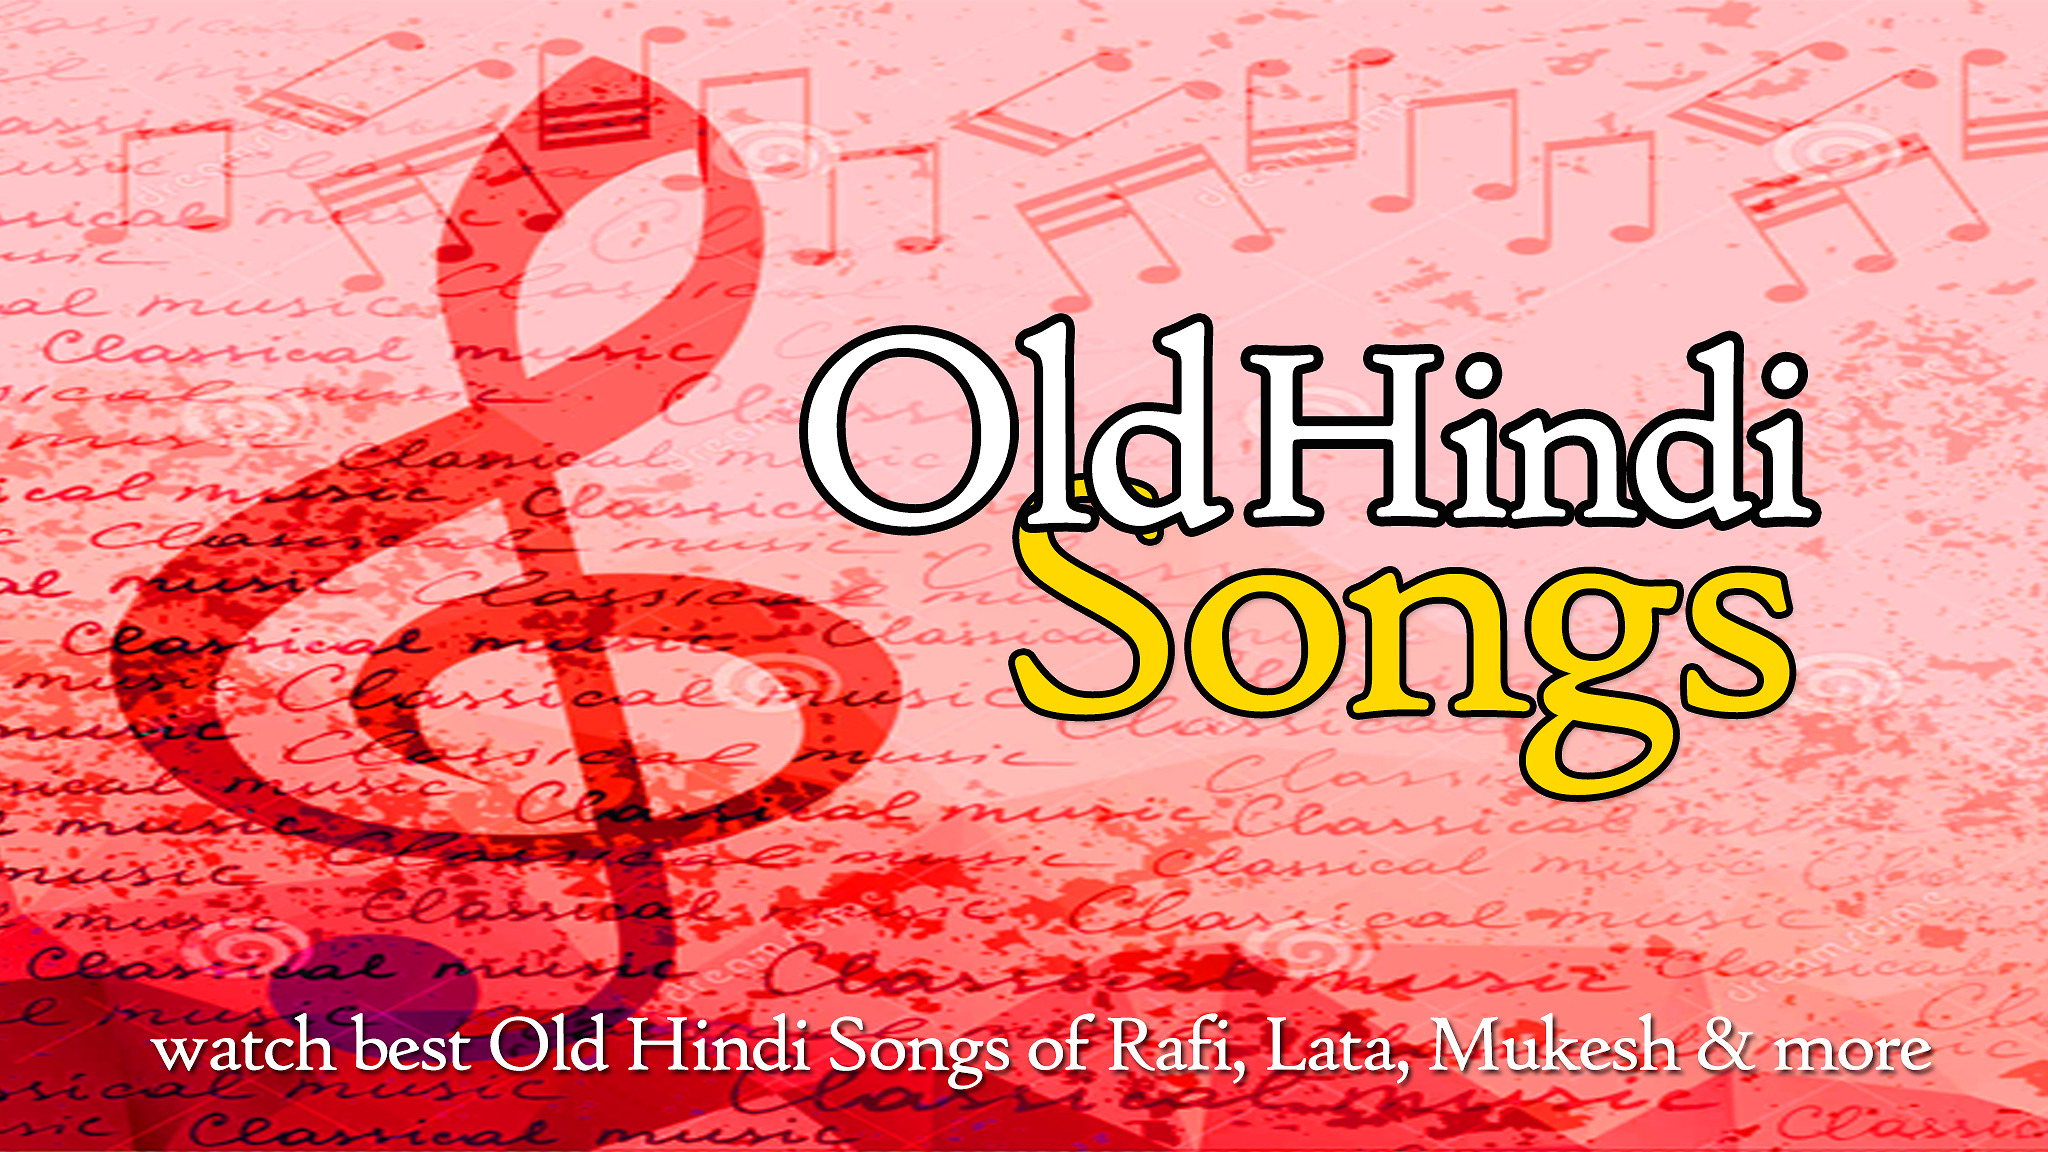 Hindi Songs On Tumblr Share this track with your pals too. tumblr